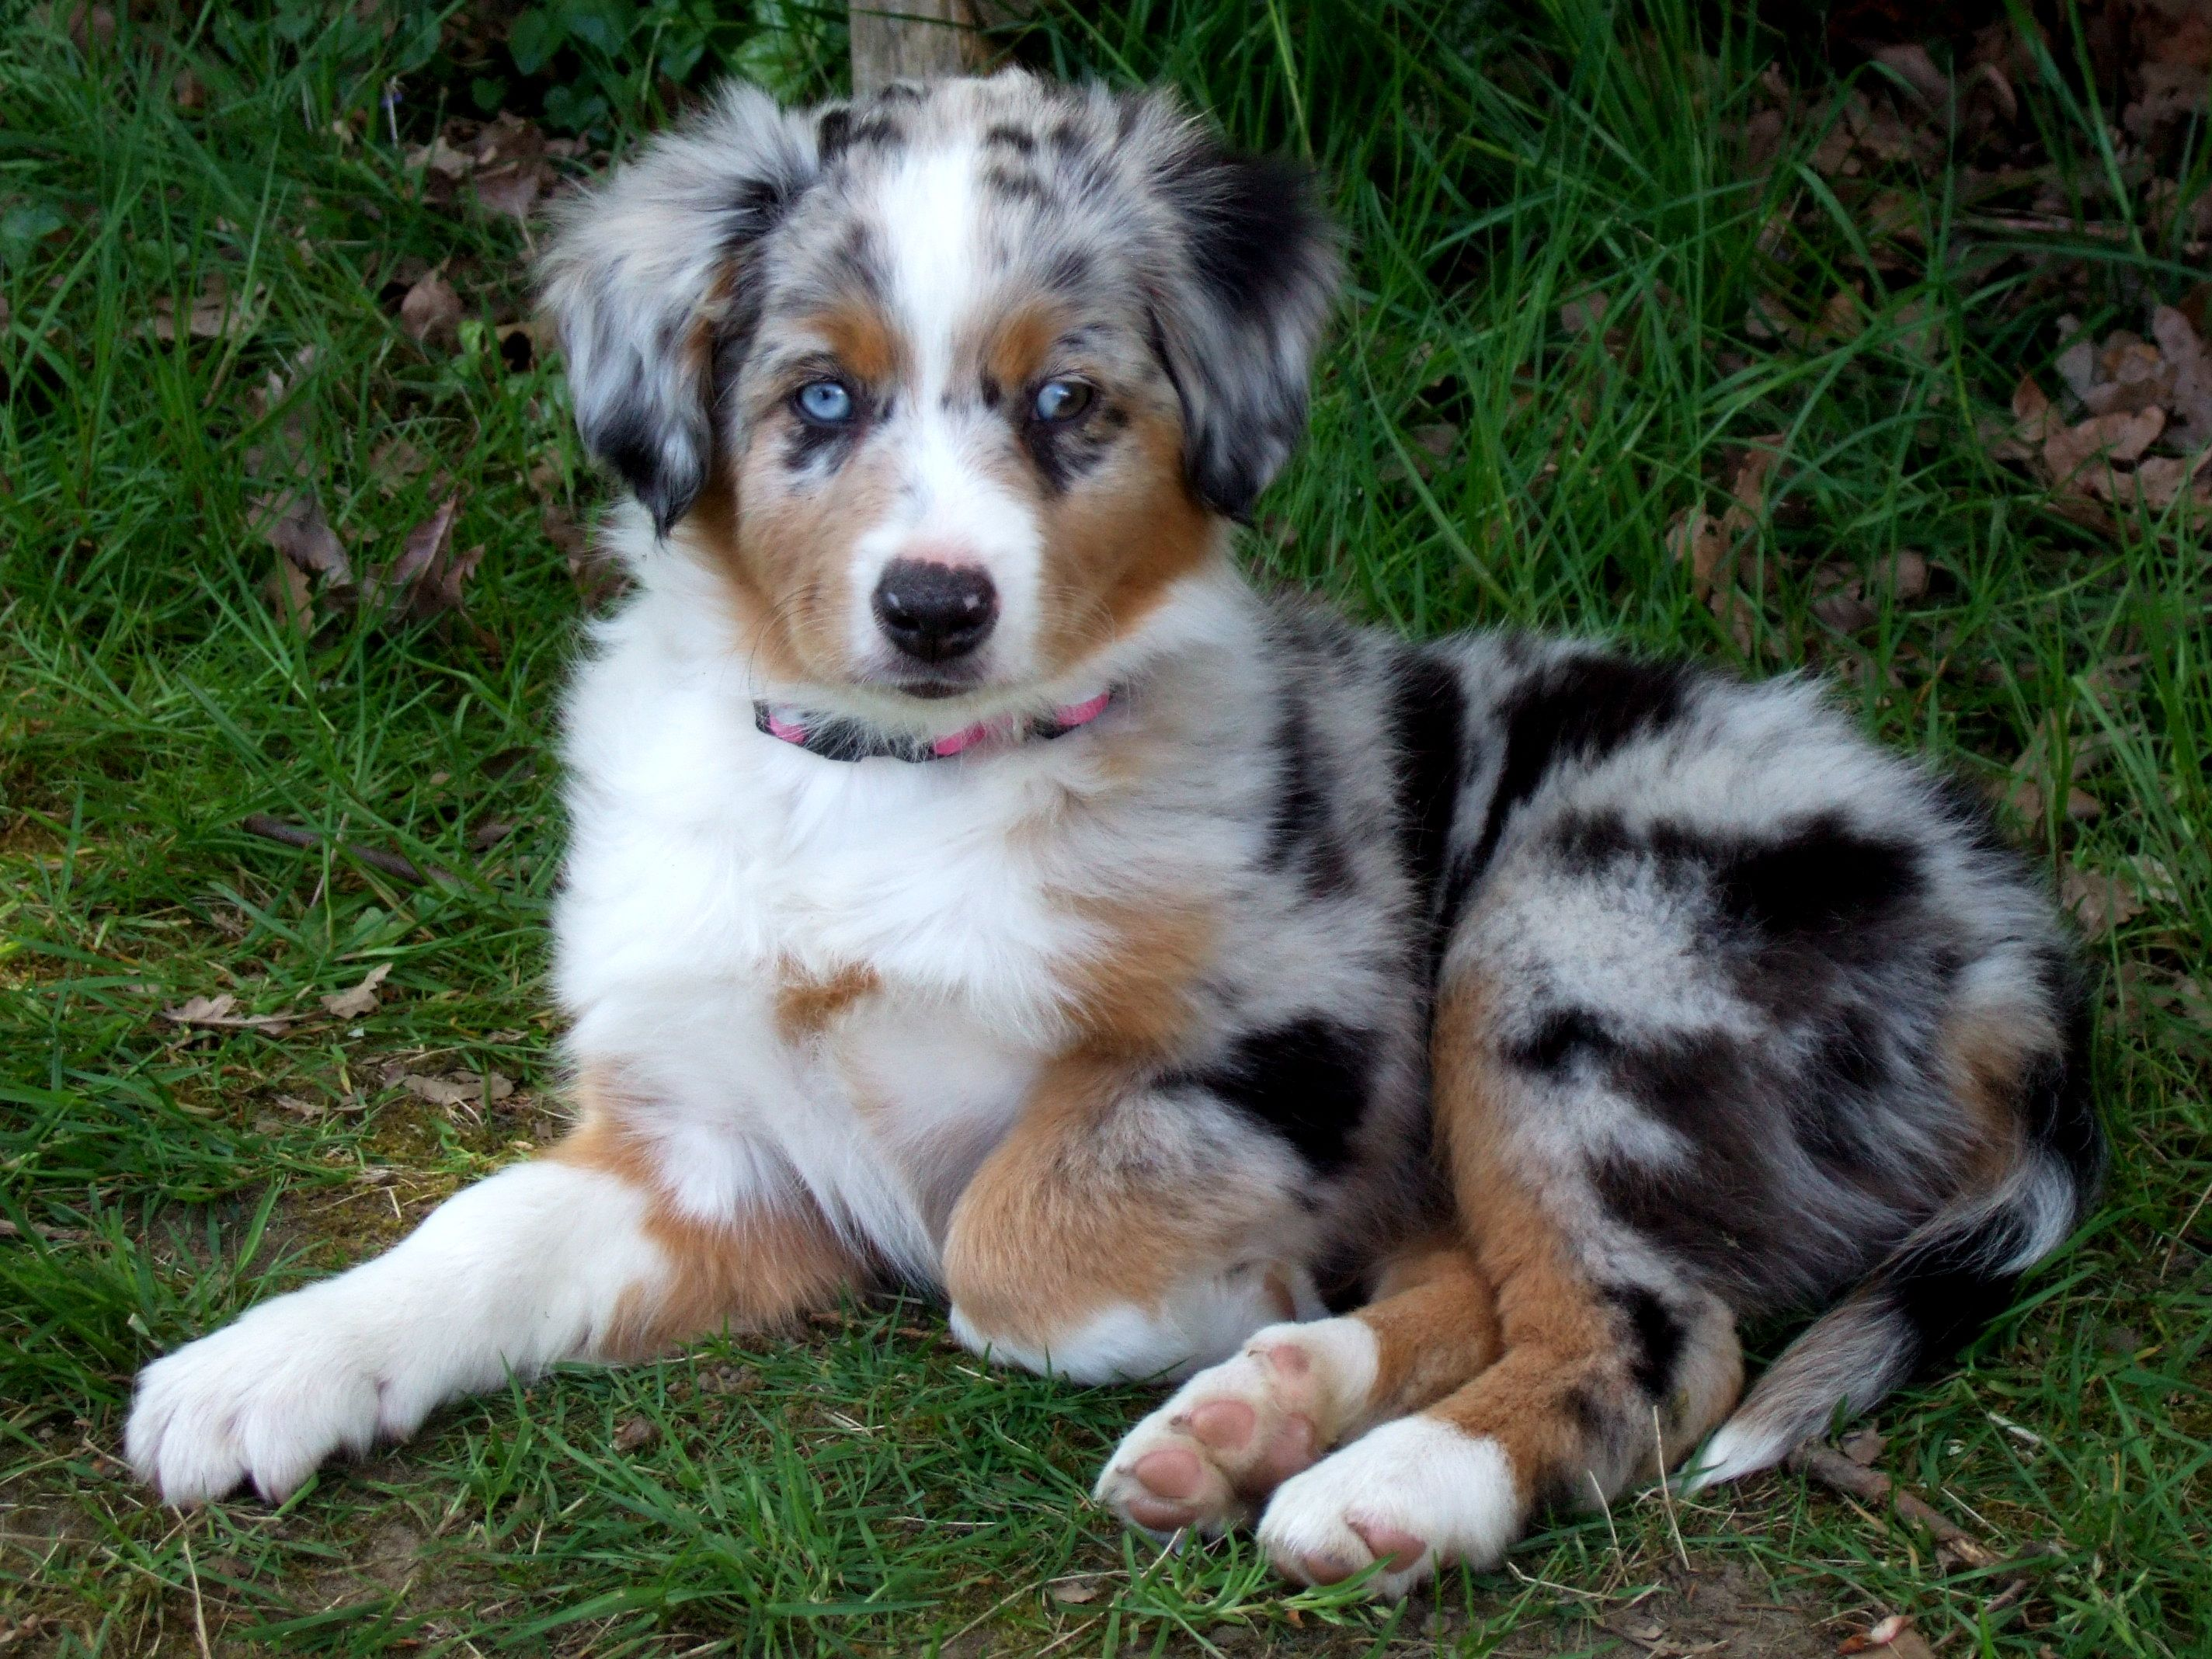 Australian Shepherd Puppy Wallpaper 8407 1920 x 1200 ...